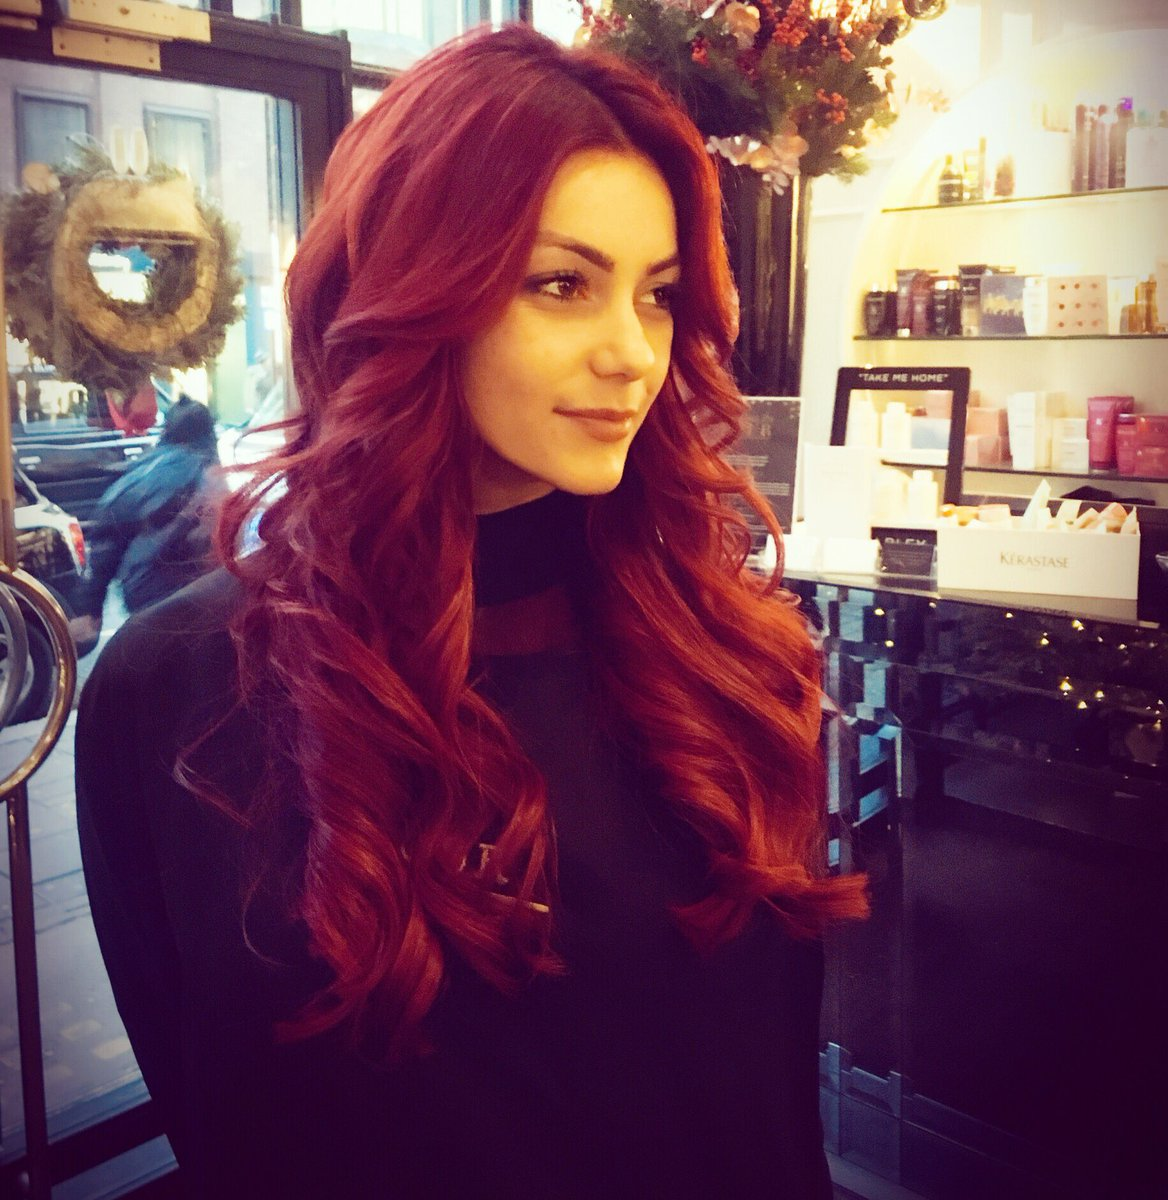 dianne buswell - photo #37